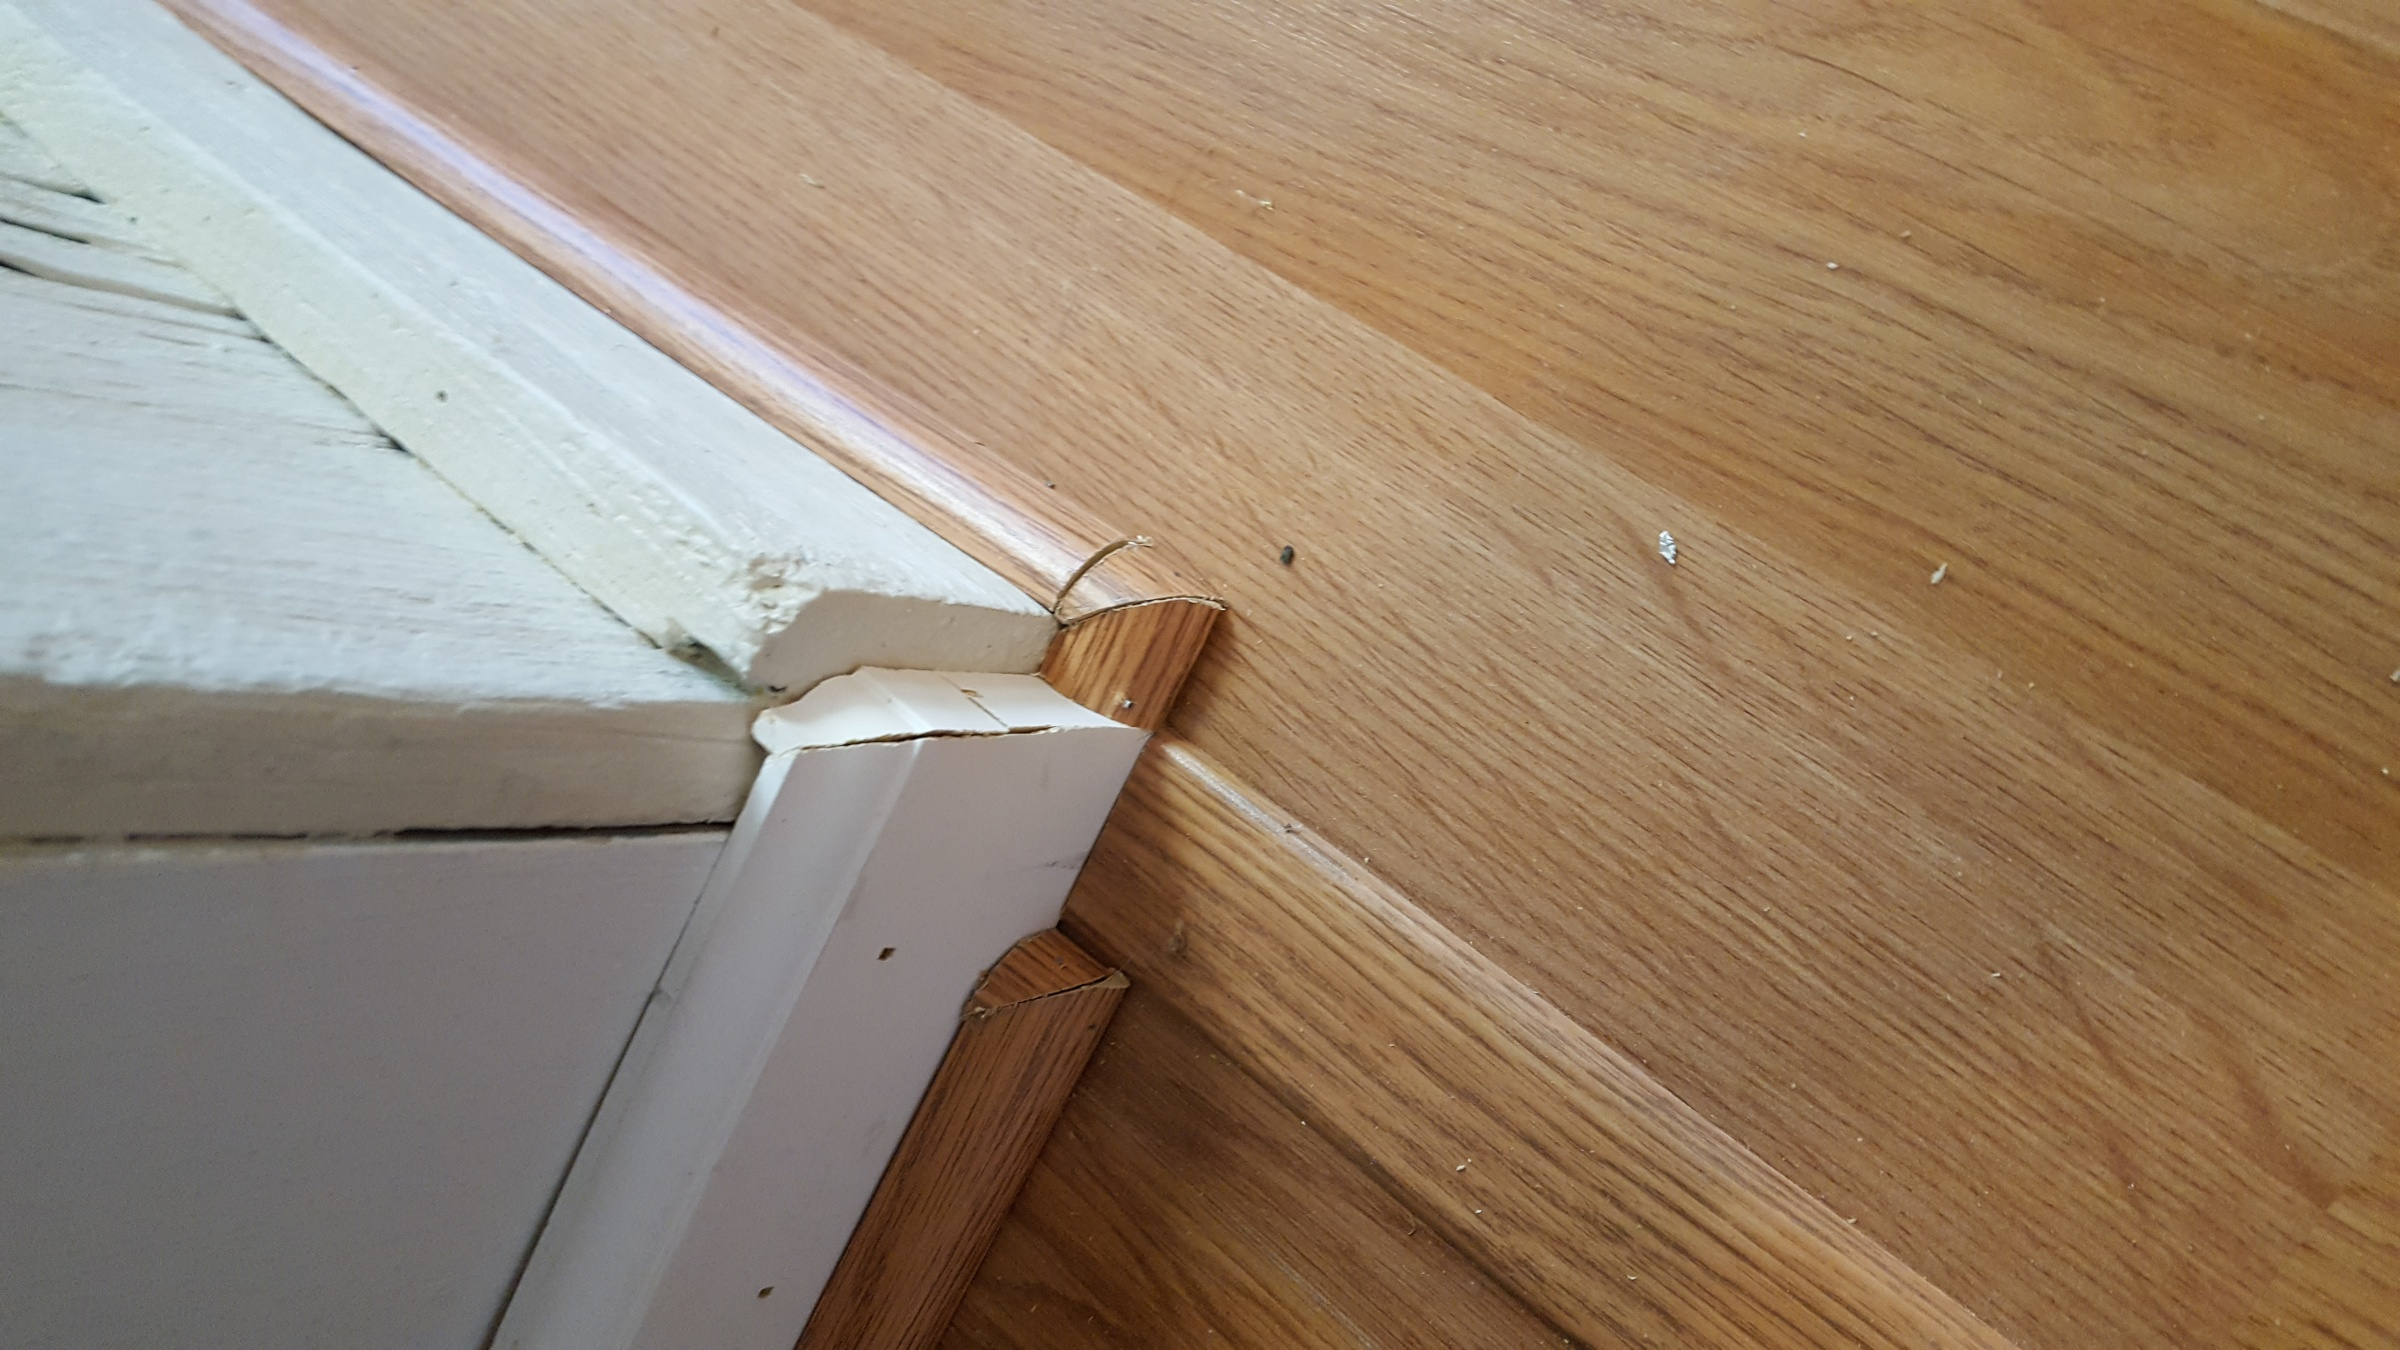 Frustrations With Flooring And Quarter Rounds In Custom Basement